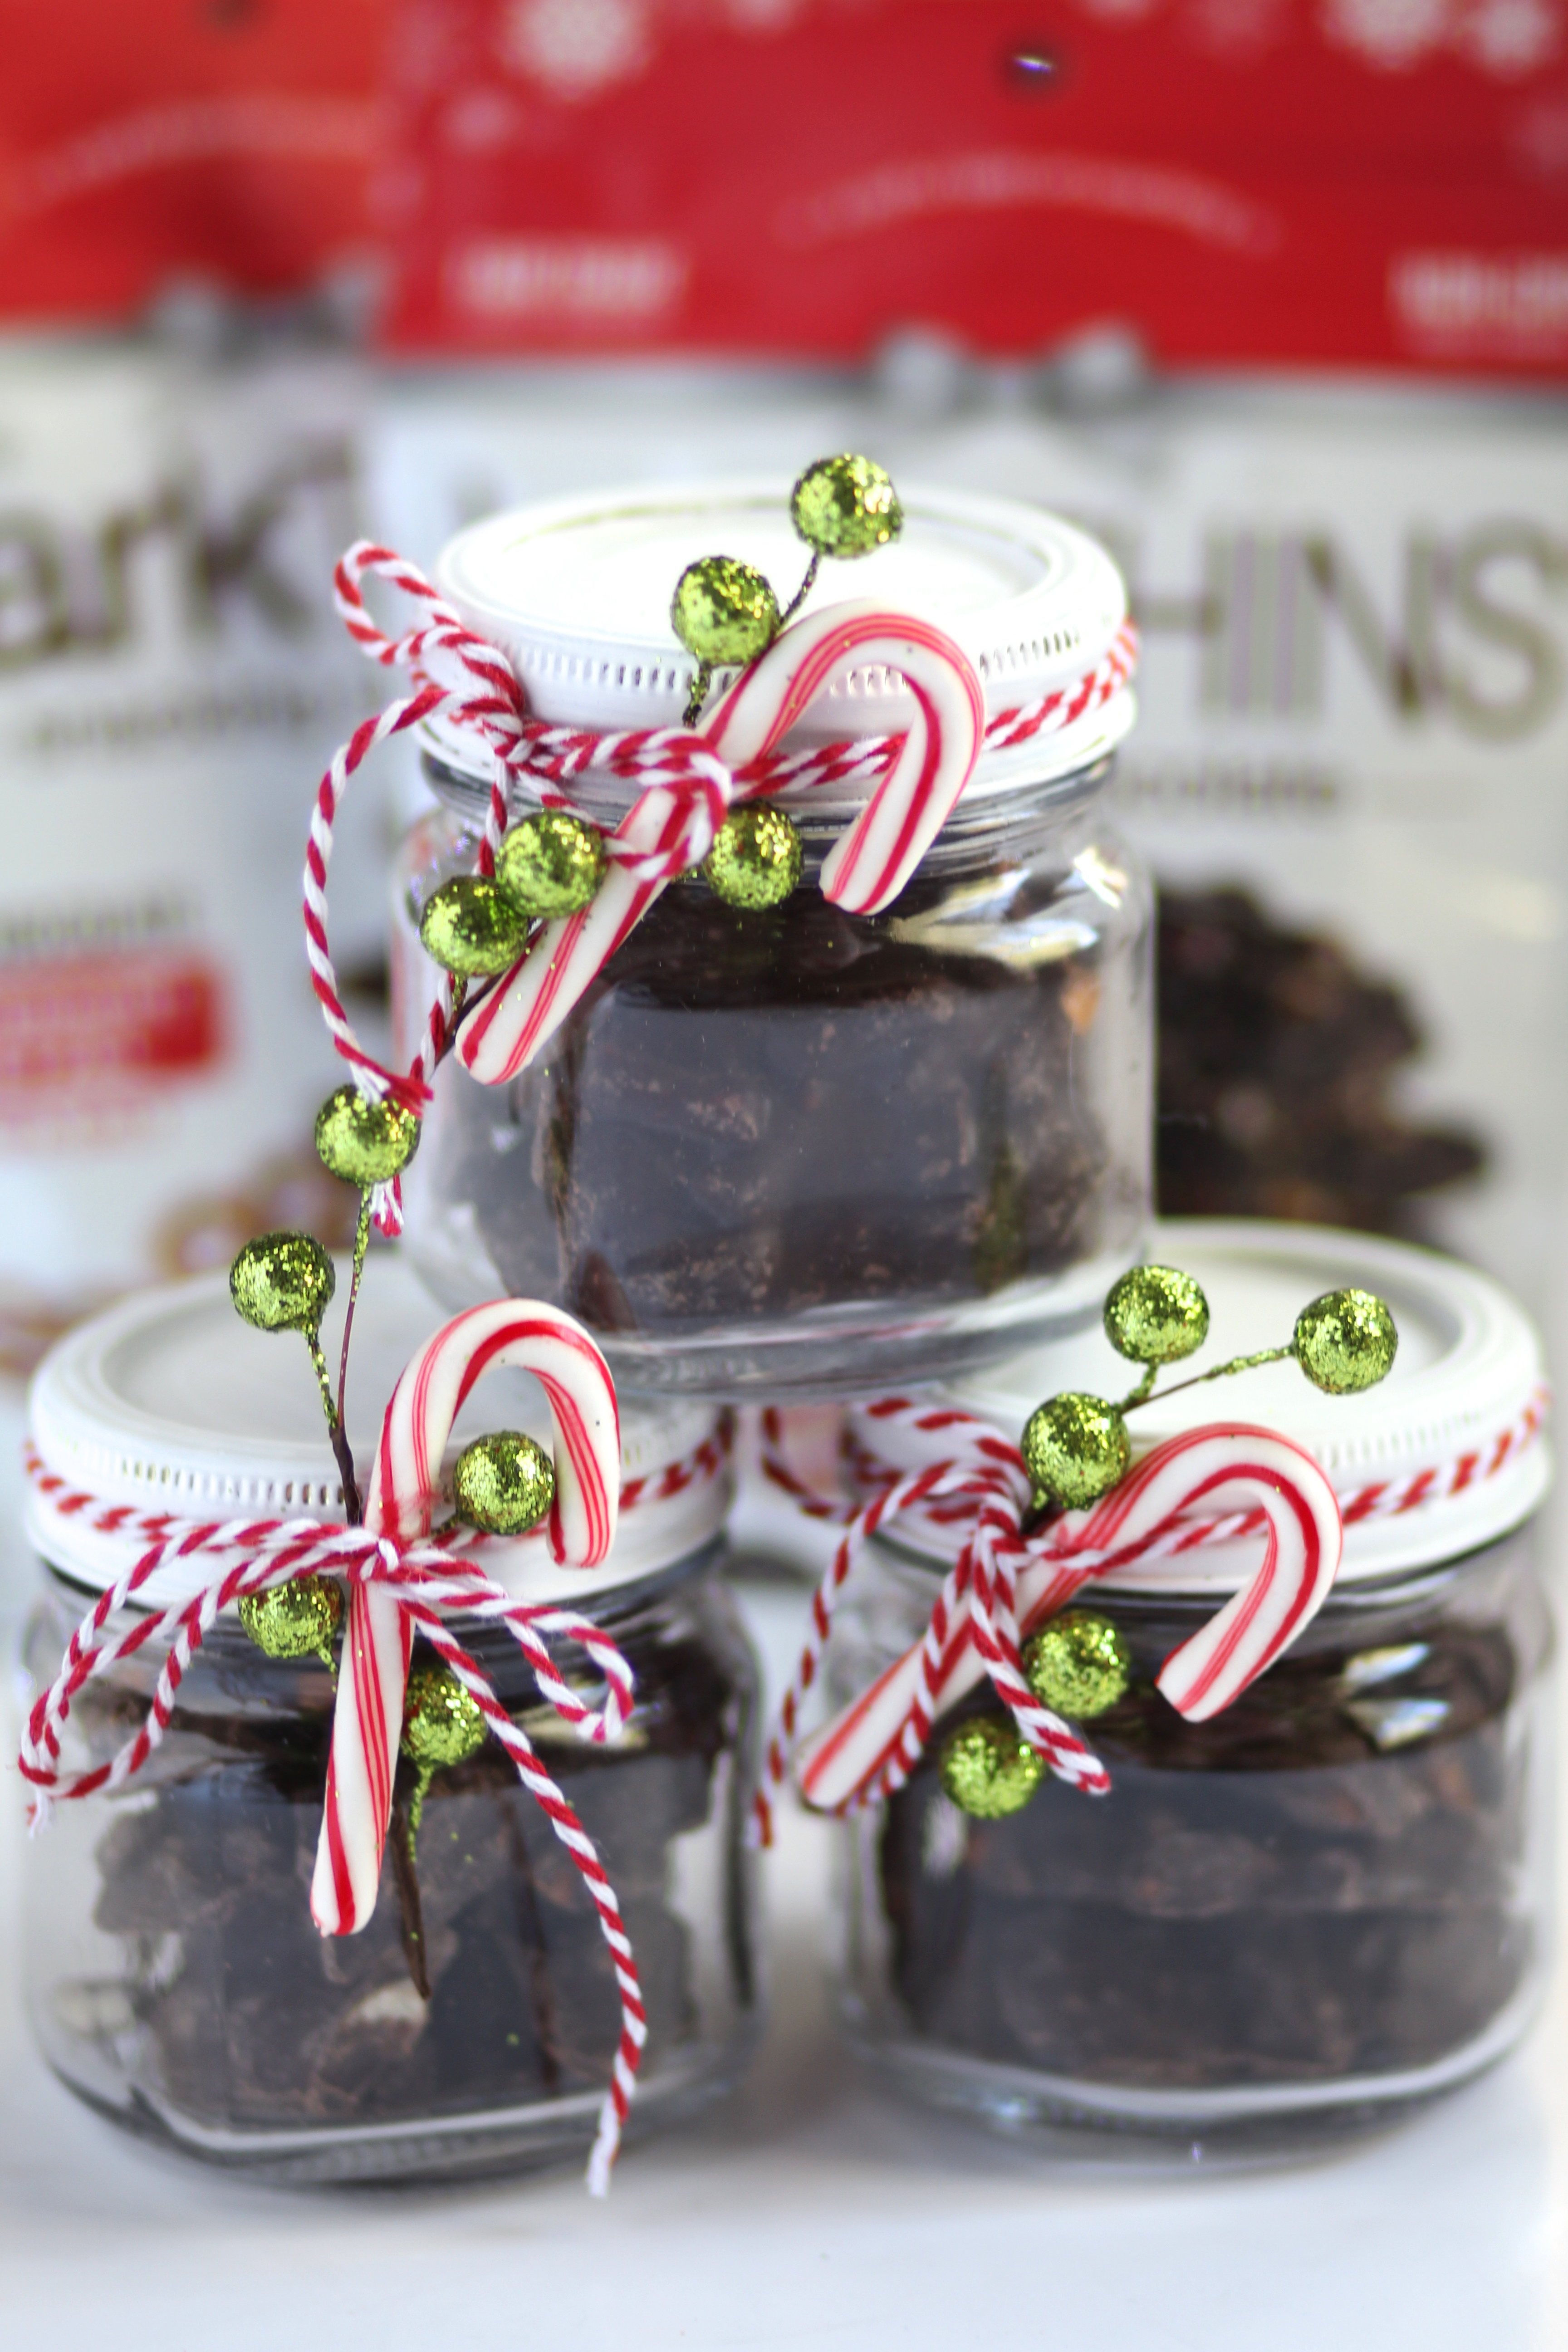 10 minute DIY Christmas Gift Idea | Daily Craving